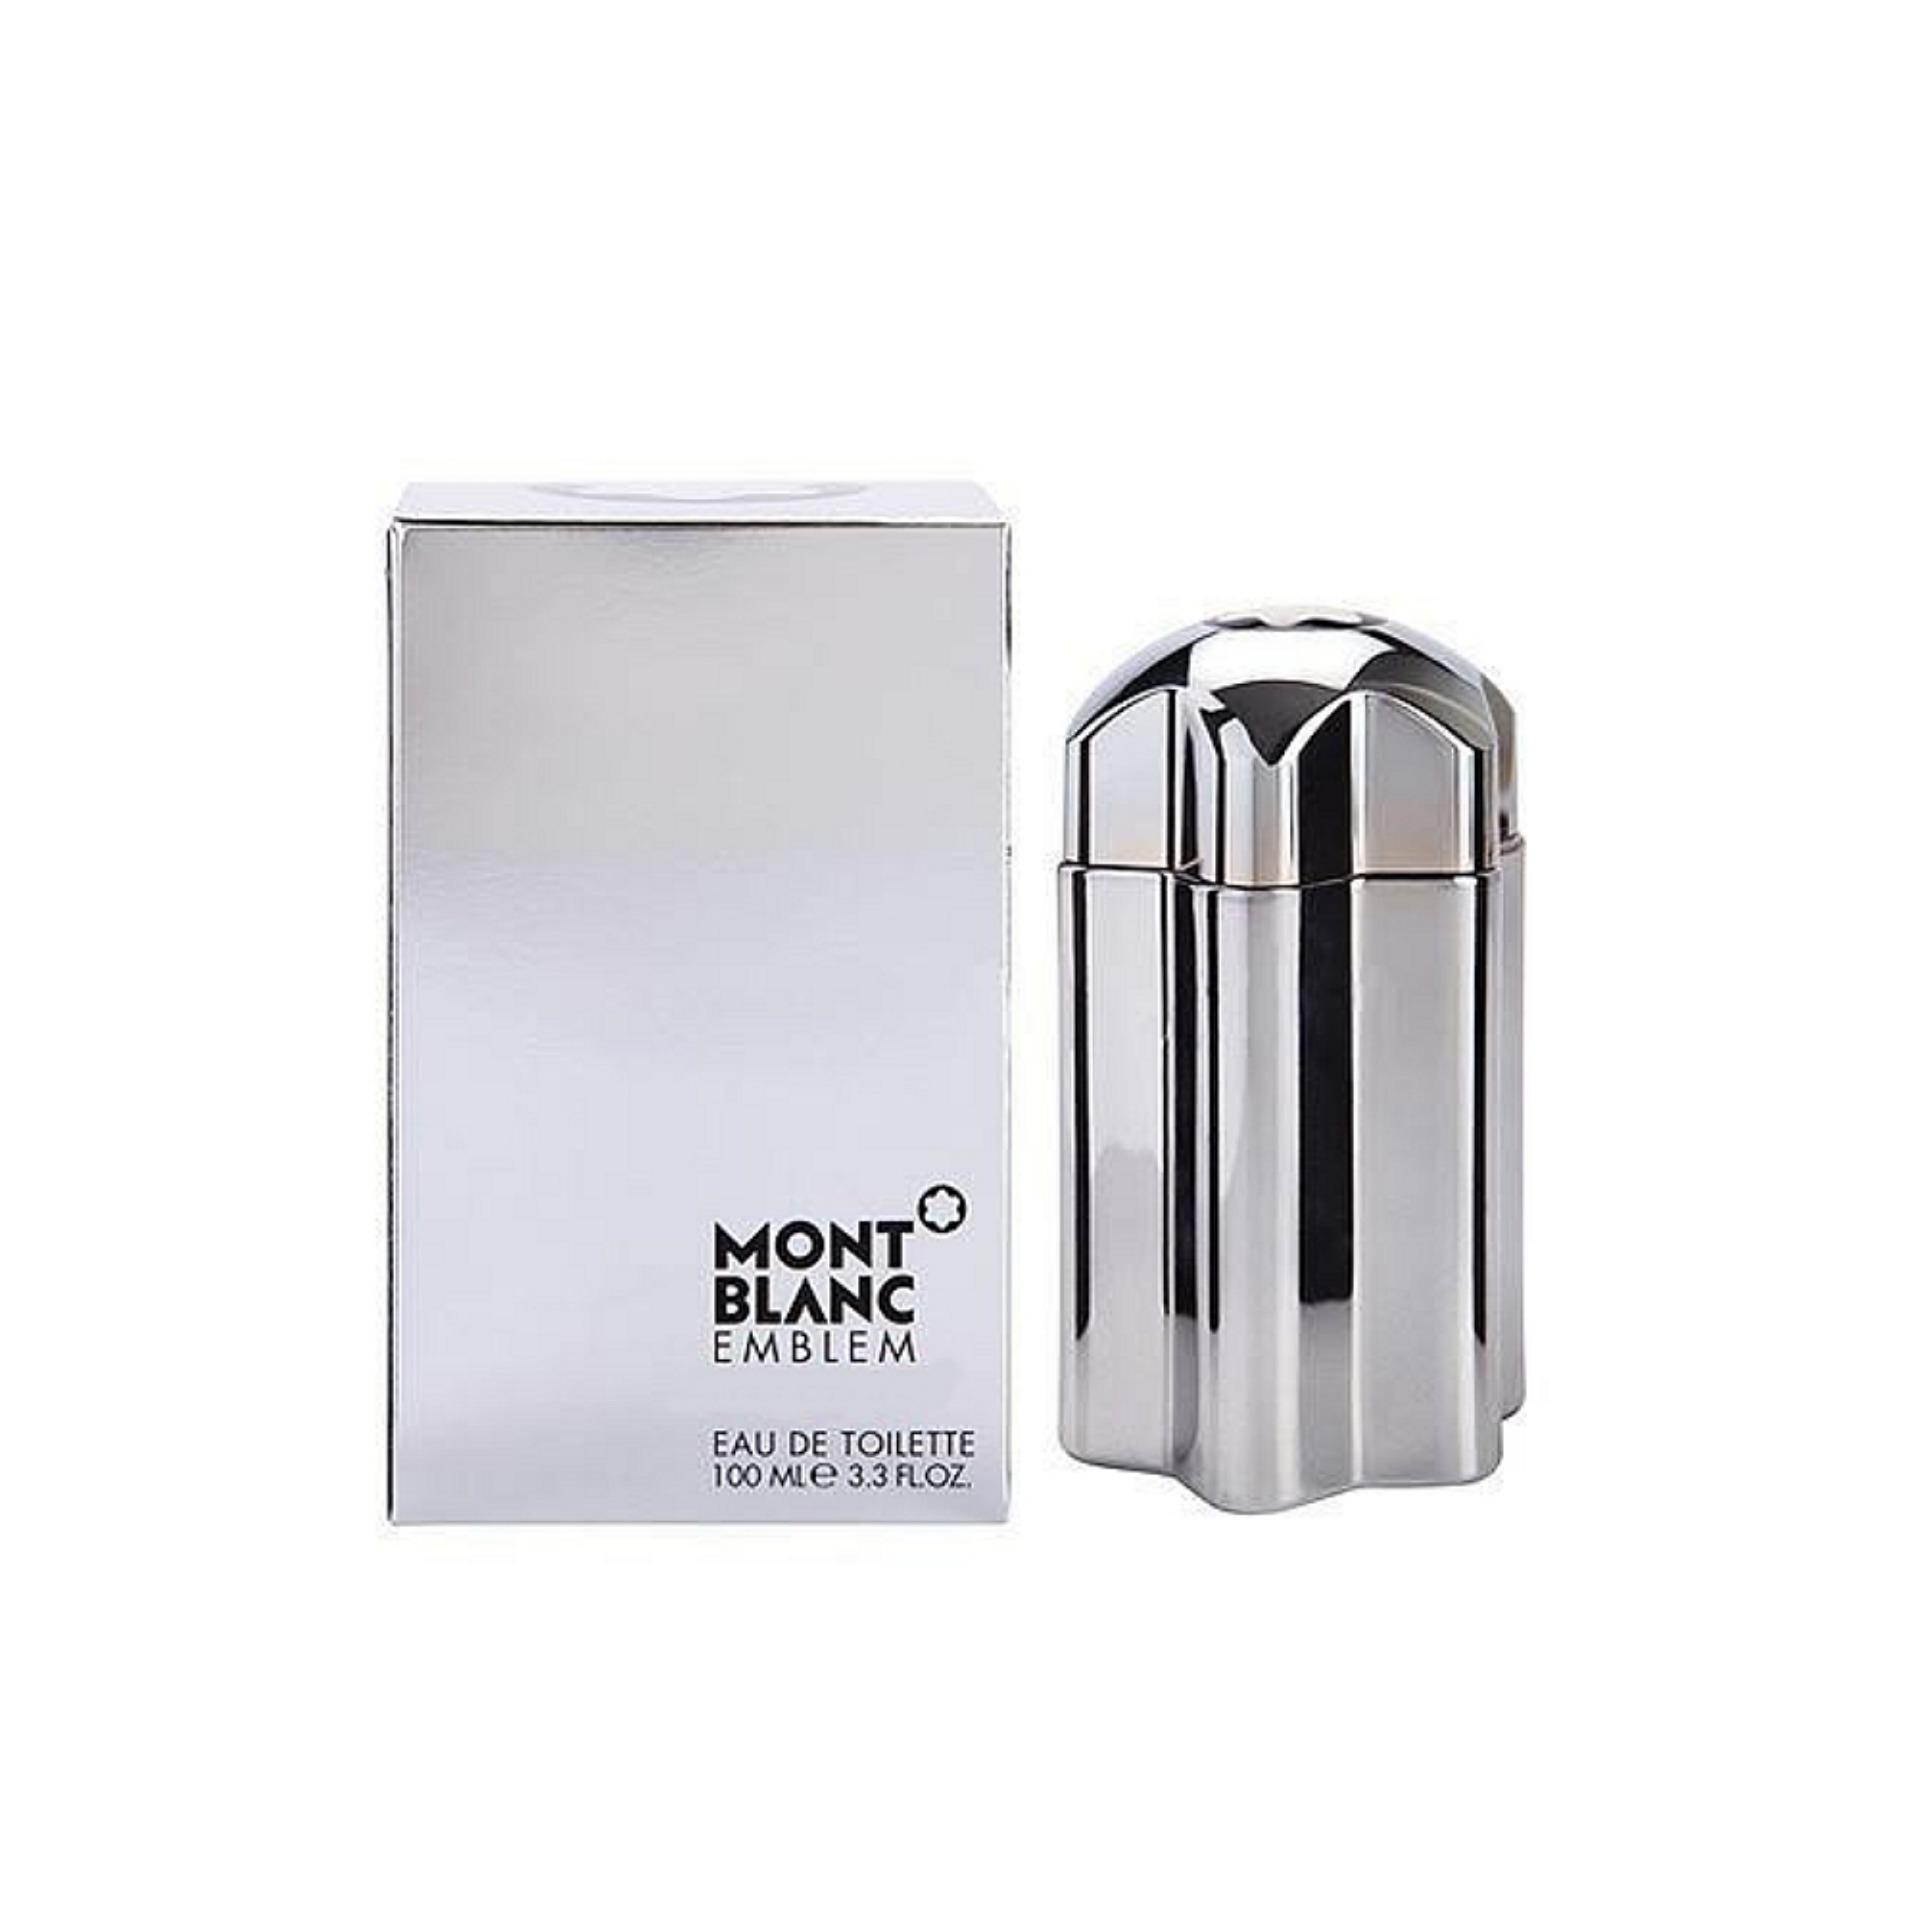 Mont Blanc Emblem Eau de Toilette for Men 100ml product preview, discount at cheapest price